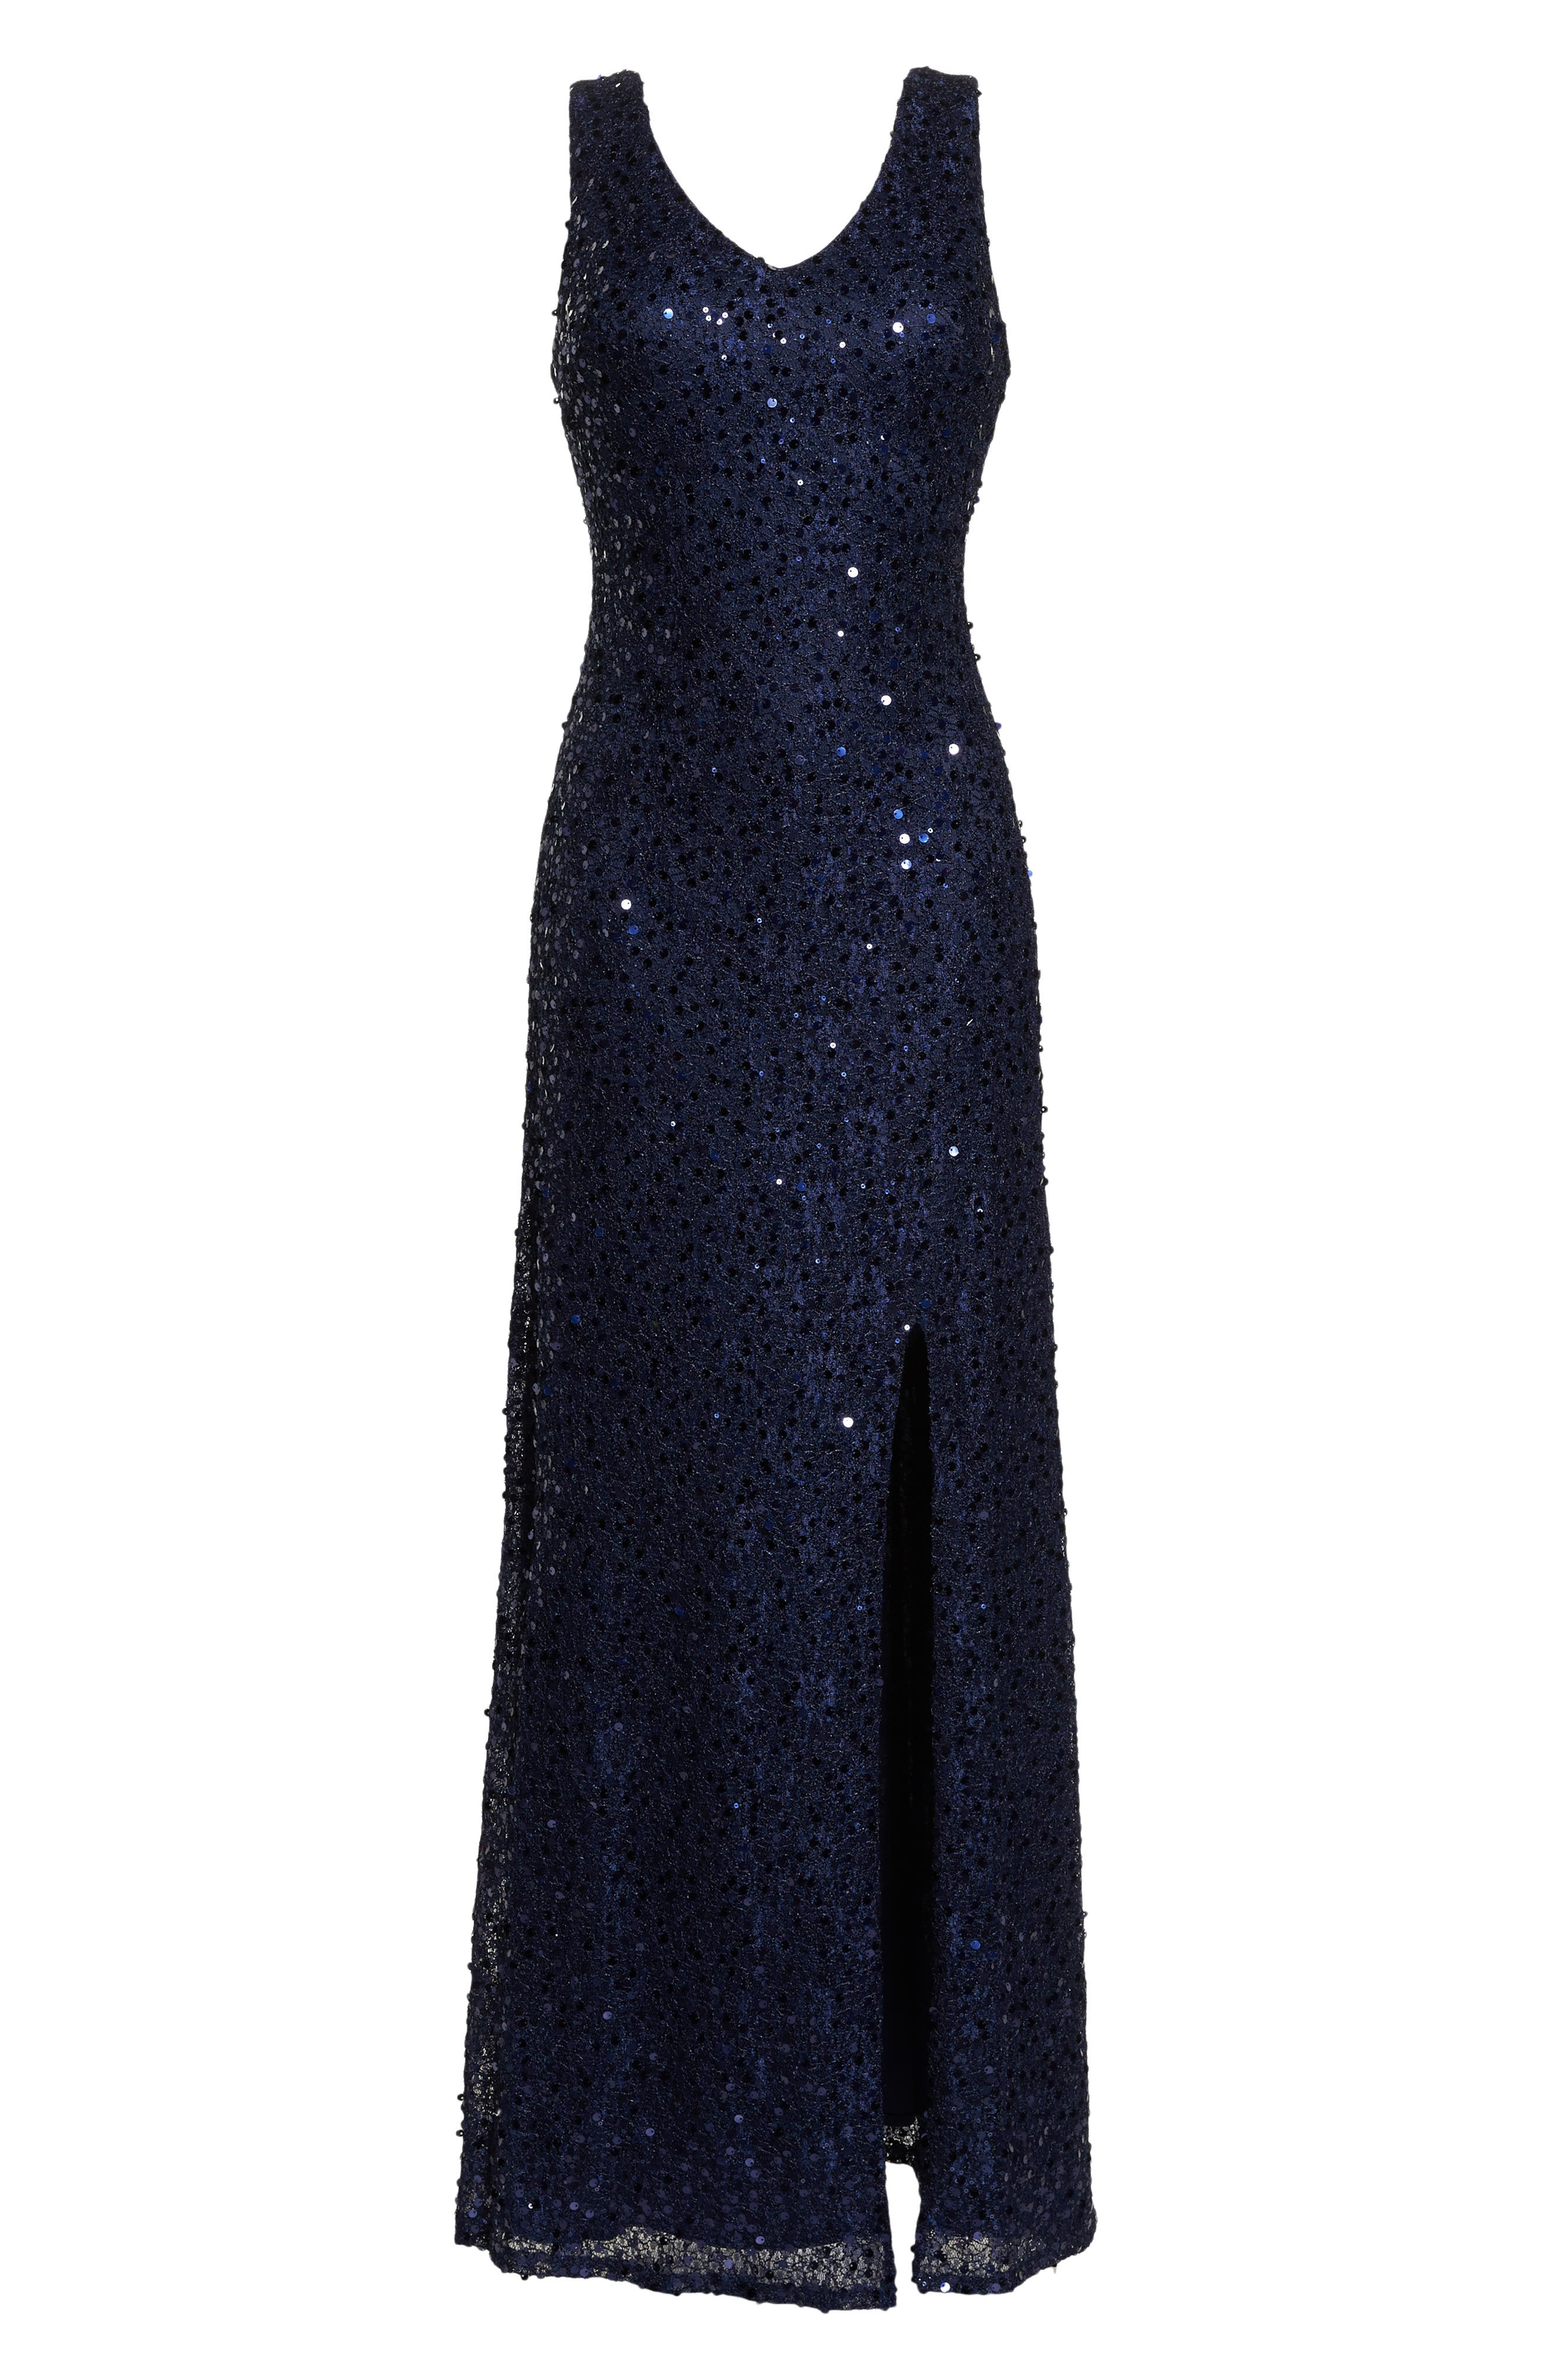 MORGAN & CO.,                             Sequin & Lace Gown,                             Alternate thumbnail 7, color,                             NAVY